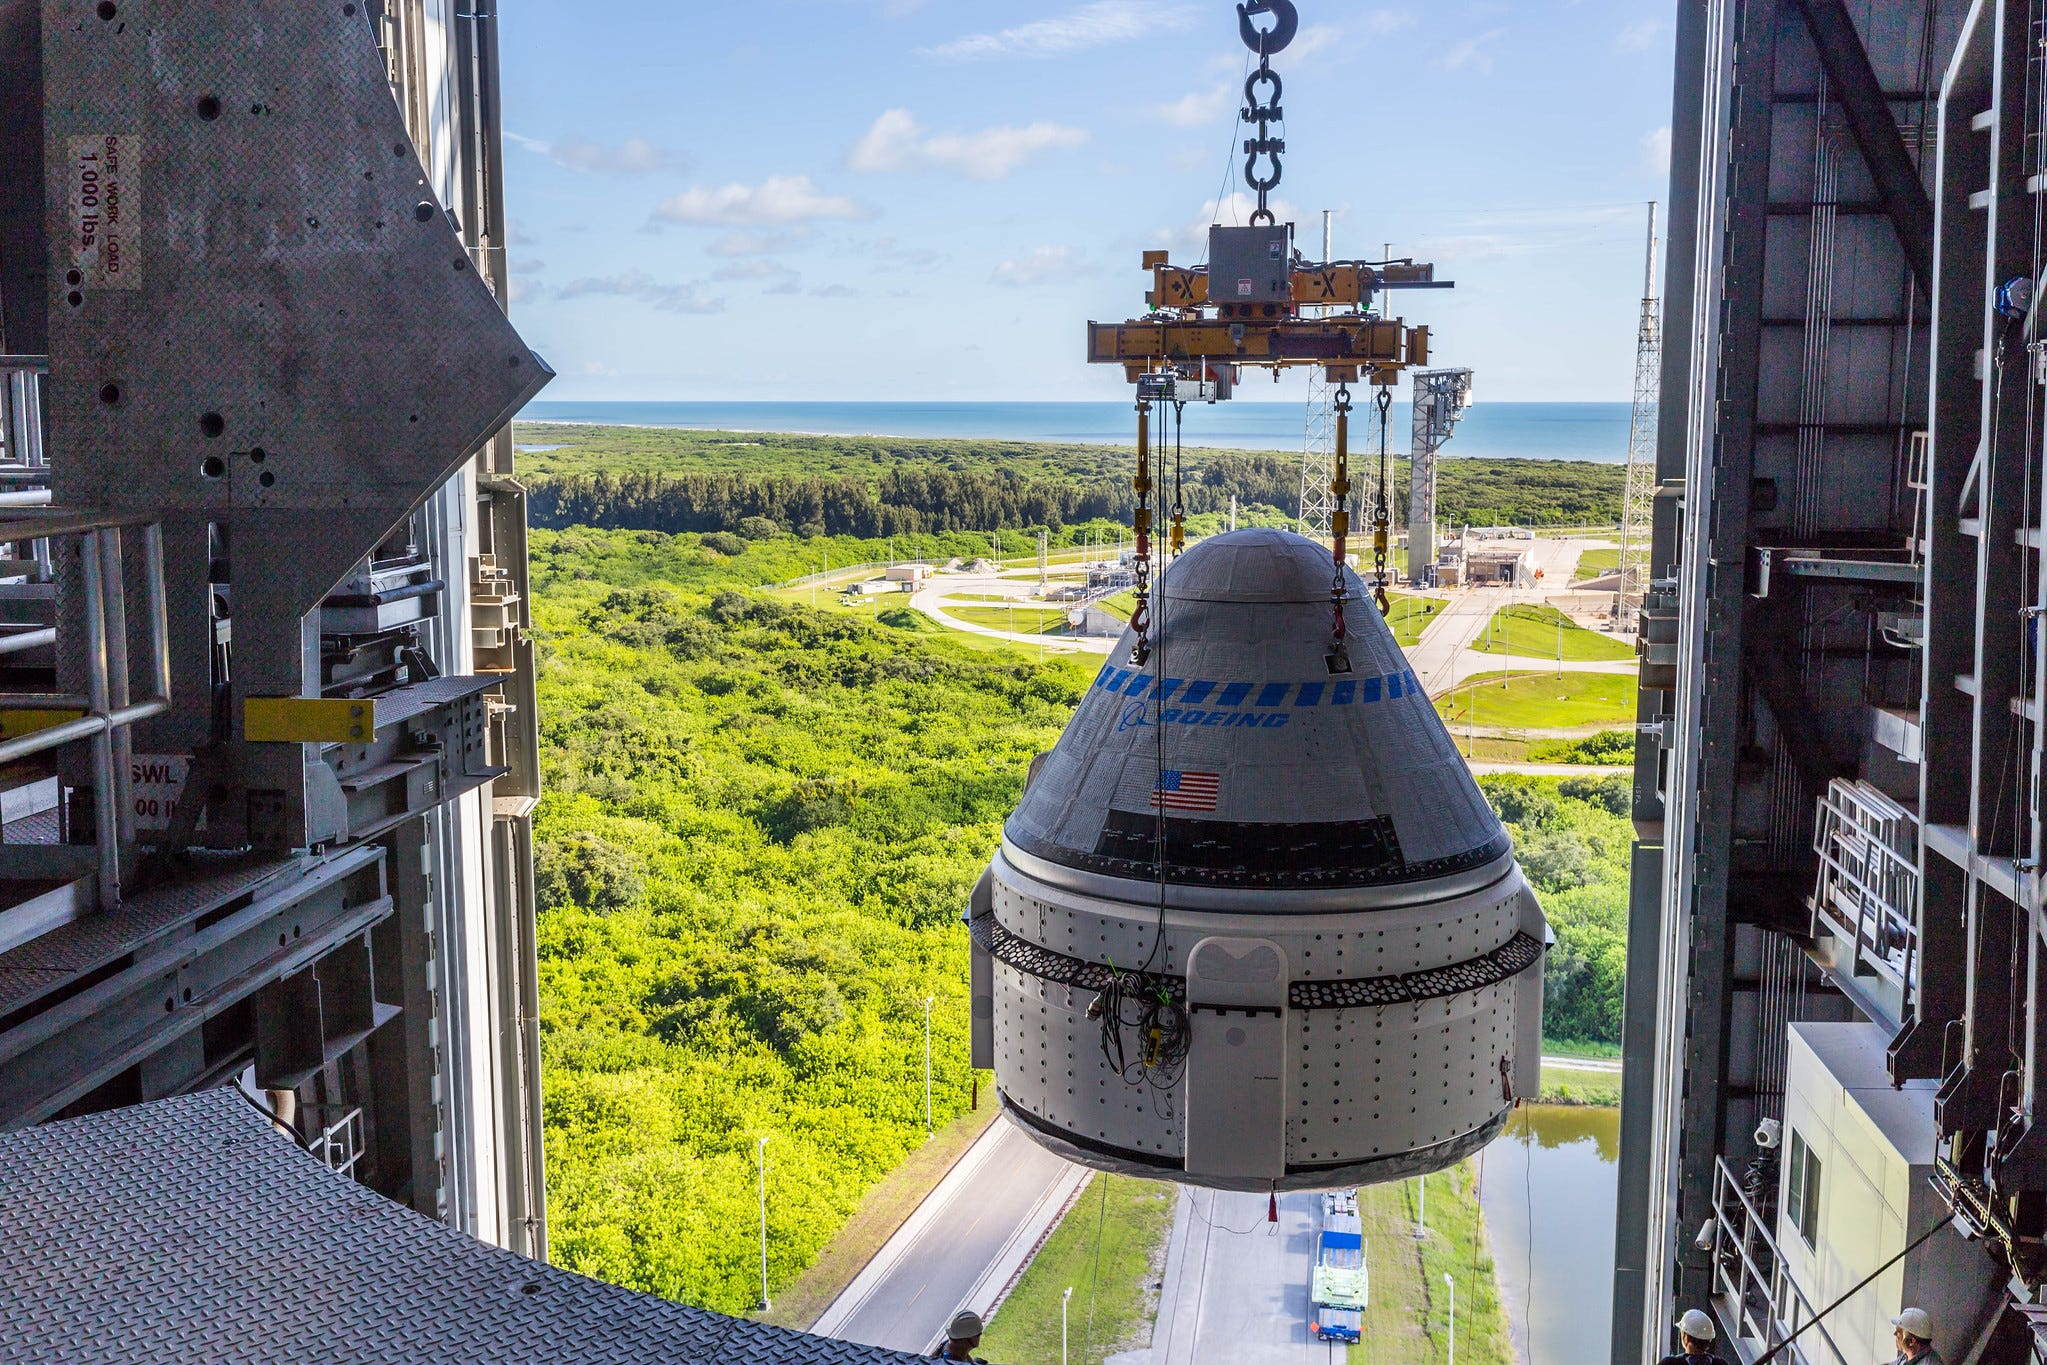 Boeing Starliner capsule lifted at Pad 41